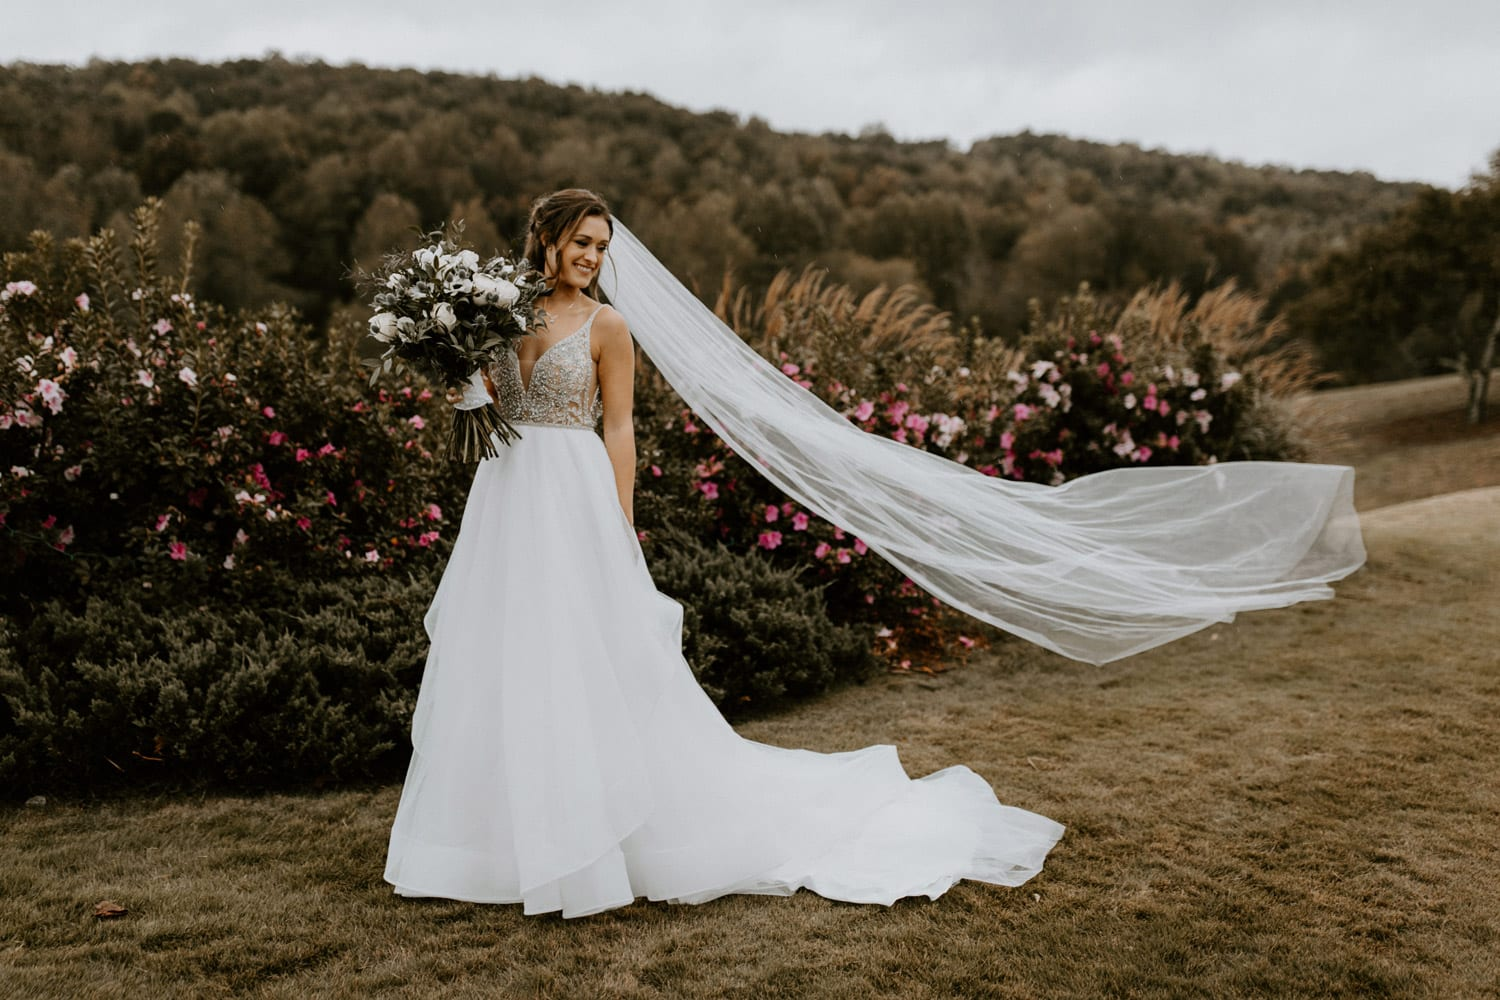 Bride with flowers outside in wedding dress